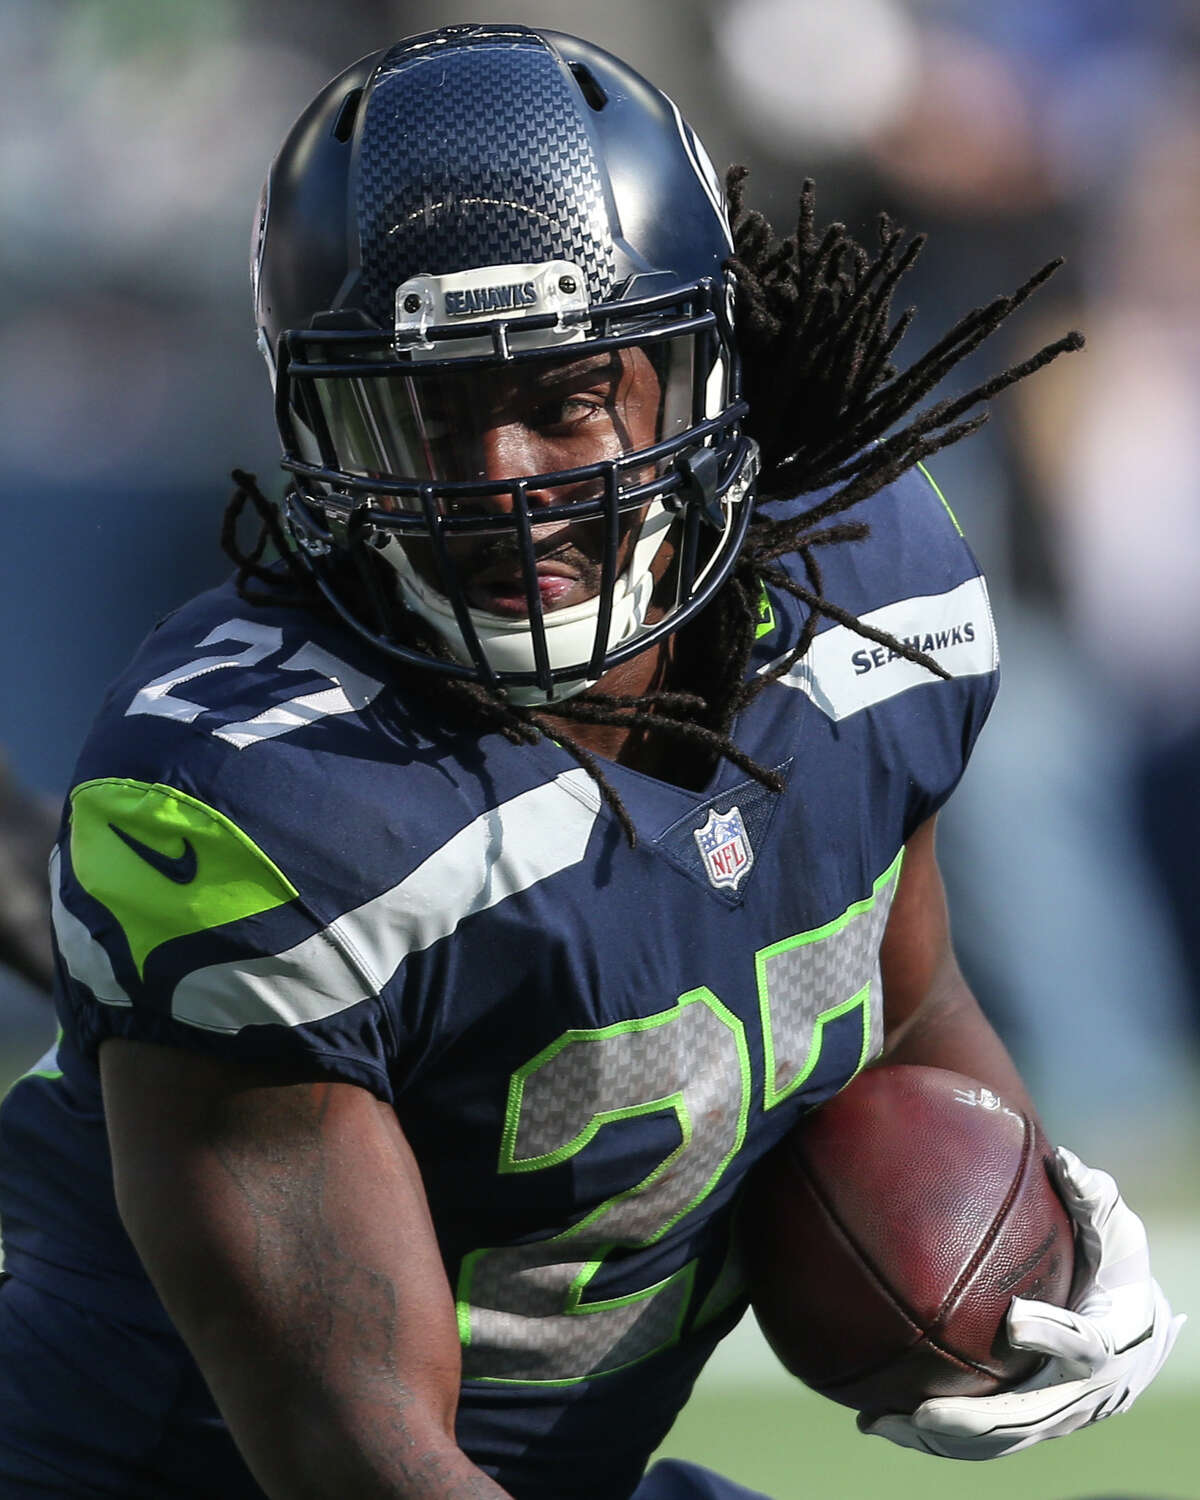 RUNNING BACKSGrade: D It's worth repeating: Wilson is Seattle's leading rusher. And that's not because offensive coordinator Darrell Bevell has suddenly developed an affinity for quarterback draws. Here's a quirky stat: Since 2016, the running back with the most rushing yards is ... Christine Michael (469 yards), who was released by Seattle in the middle of last season. Rookie Chris Carson was on pace to put together a solid debut season in the backfield before suffering a broken leg on Oct. 1. Without Carson, Eddie Lacy, Thomas Rawls, J.D. McKissic and C.J. Prosise haven't seen much success. McKissic has the unit's only touchdown, in week four, and Lacy's line of 128 yards on 48 carries is the best of the bunch. Entering week nine, Seattle wanted to use Lacy as the featured back but he suffered a groin injury after six carries. Rawls stepped in and had 39 carries on nine rushes but that's not near the production Seattle expected from the 2015 break-out star.